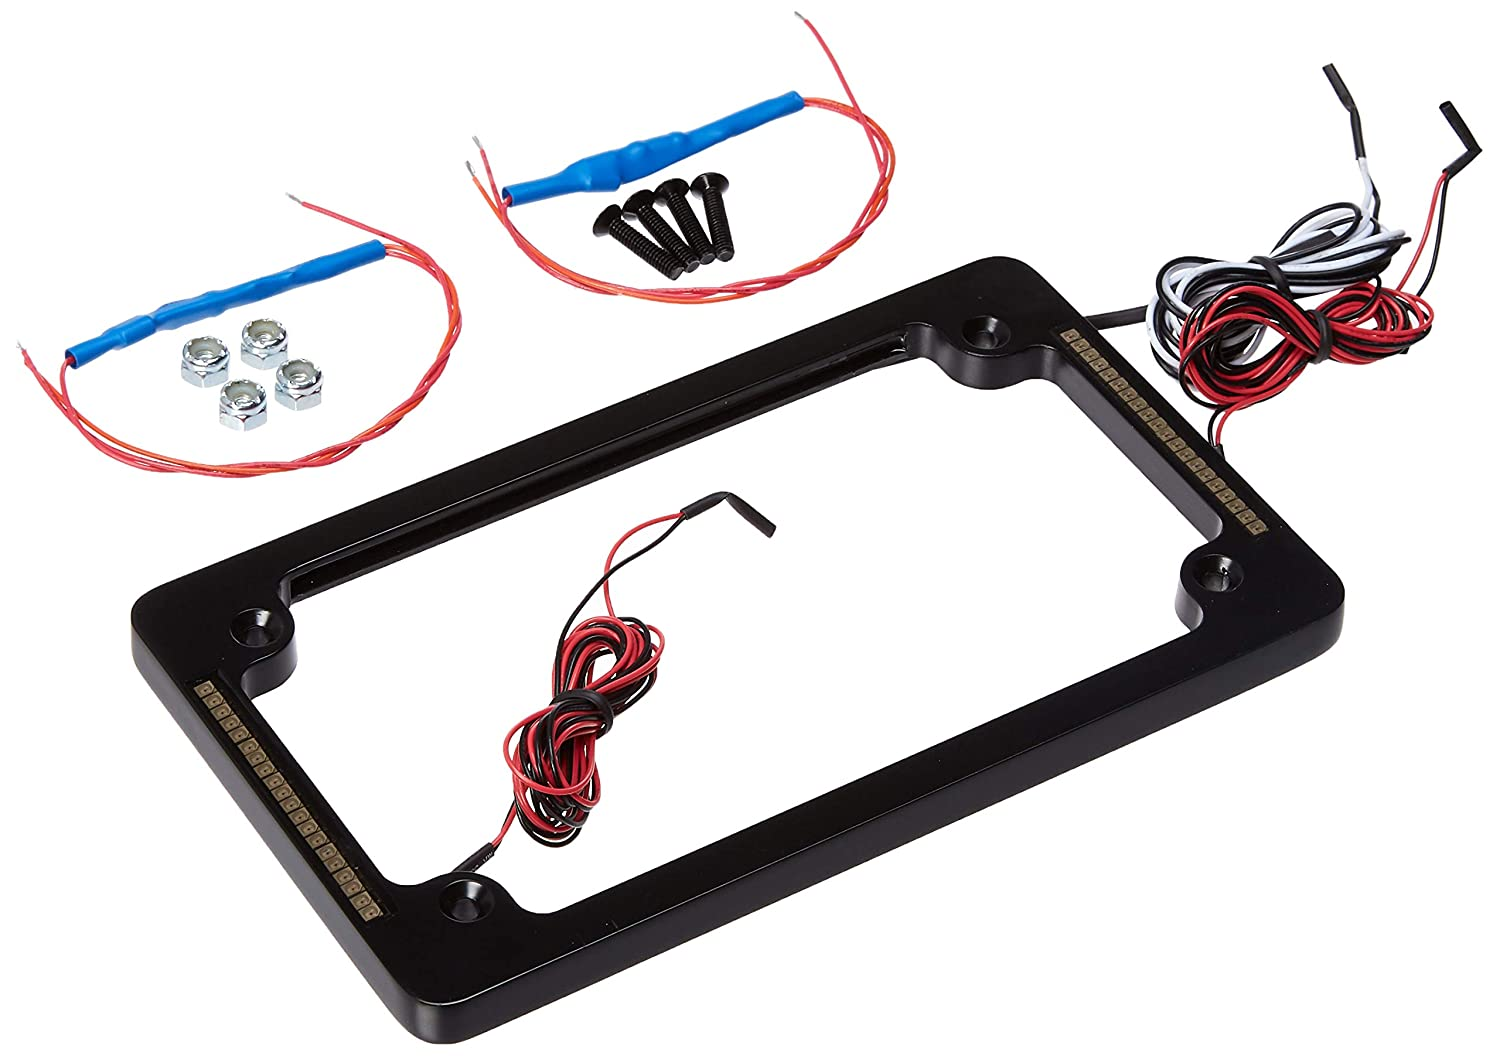 Chrome All-In-One with Integrated Plate Light, Turn-Signals, and Brake Light Custom Dynamics TF04-C License Plate Frame